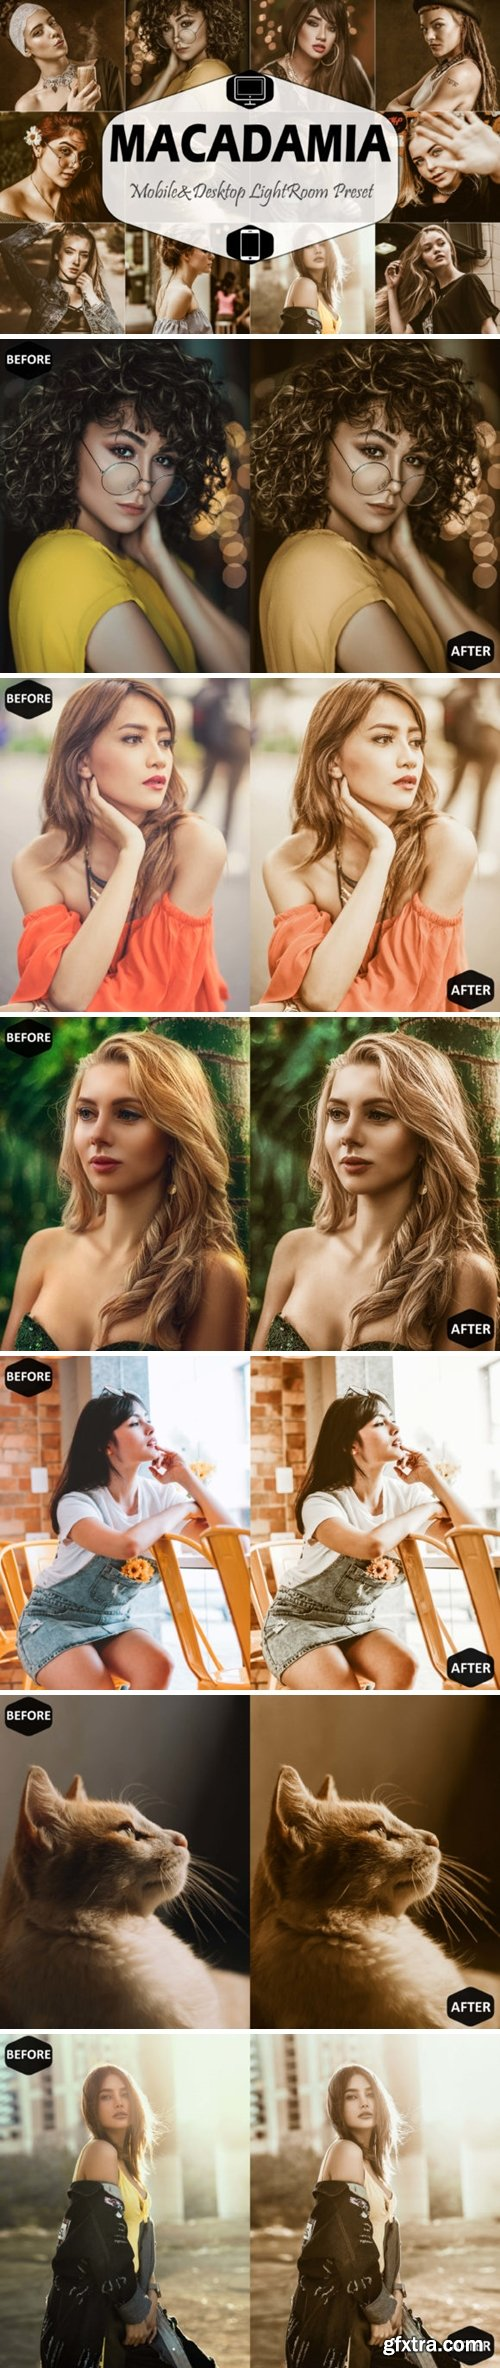 Macadamia Mobile Desktop Lightroom Preset 1629253